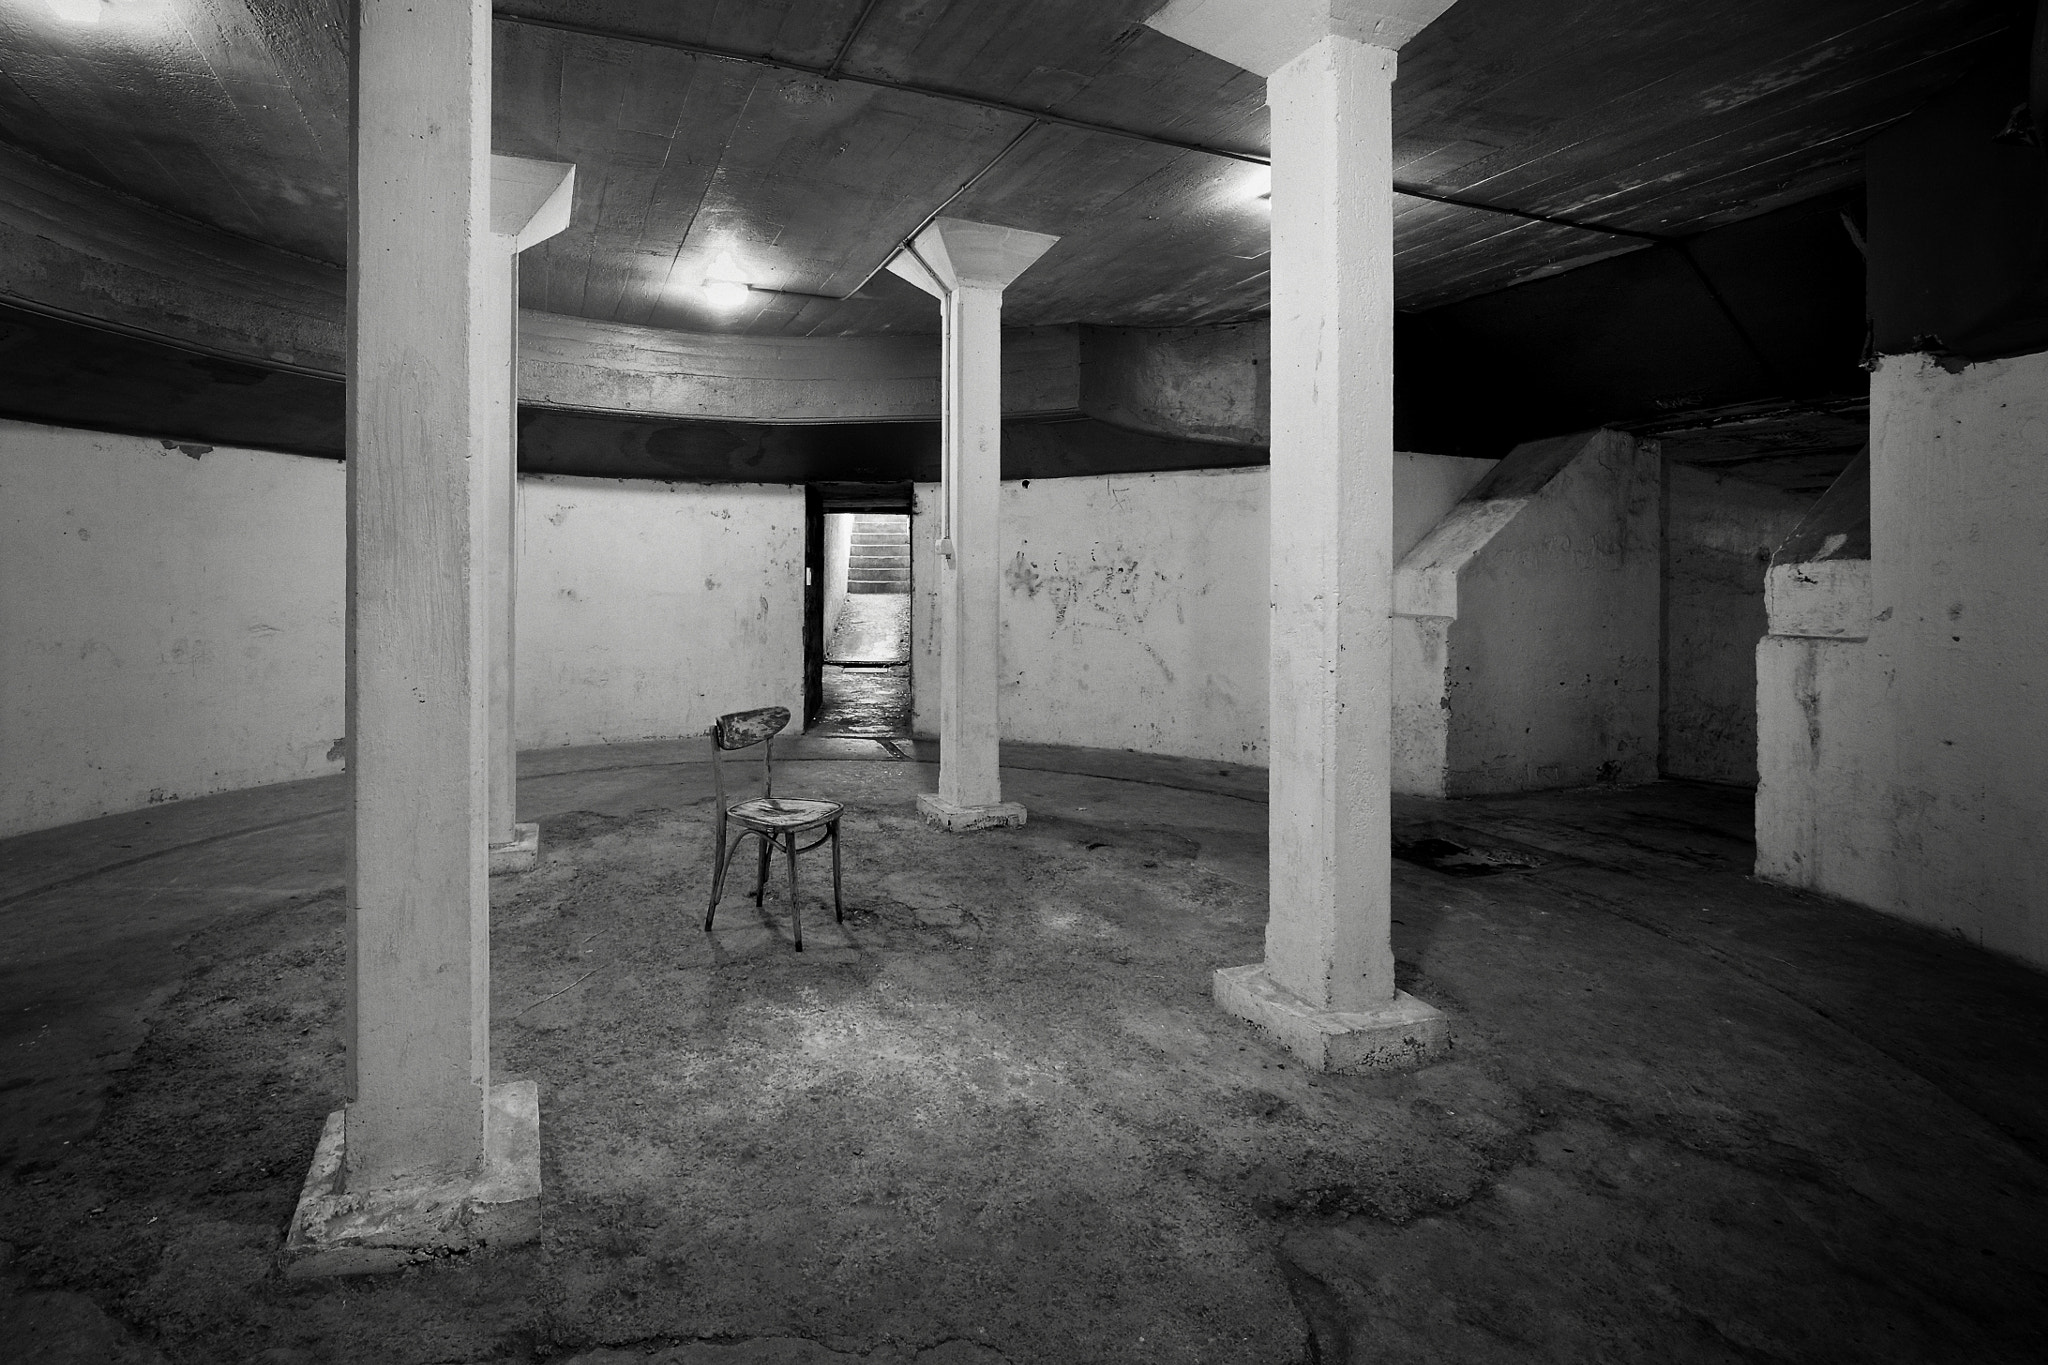 Photograph The Interrogation Chamber by Peter Denniston on 500px